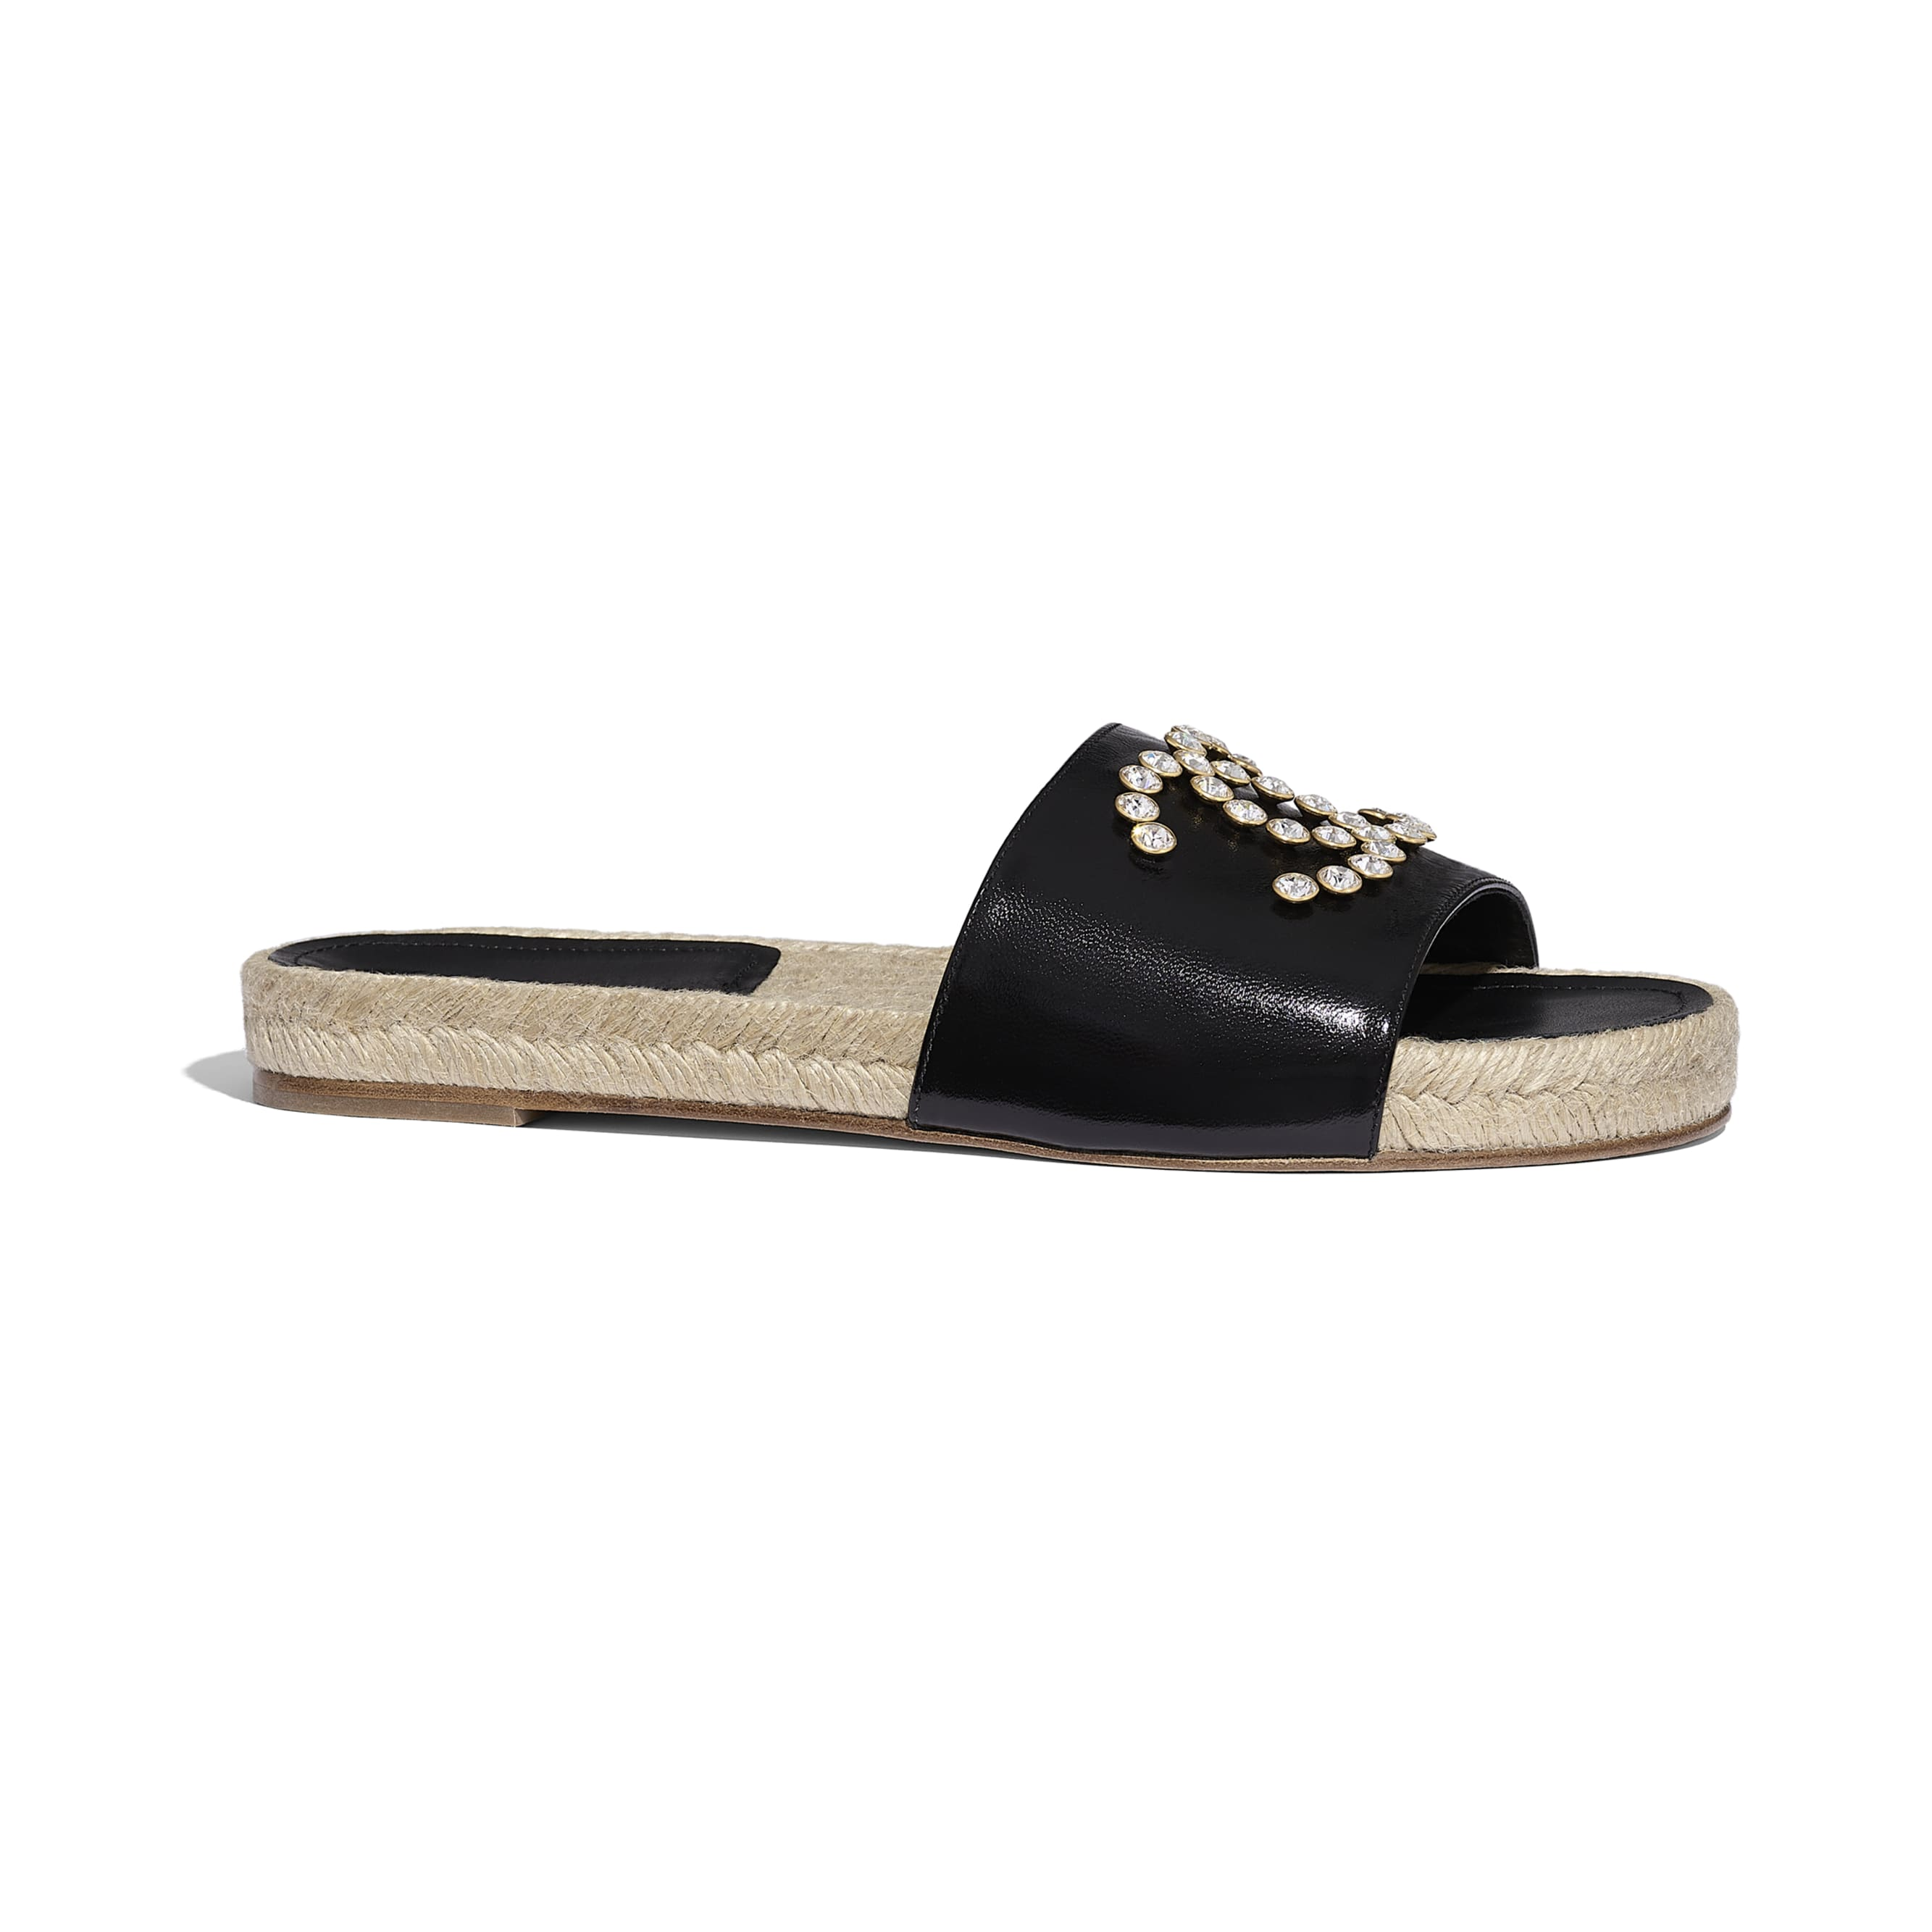 Mules - Black - Patent Lambskin - CHANEL - Default view - see standard sized version